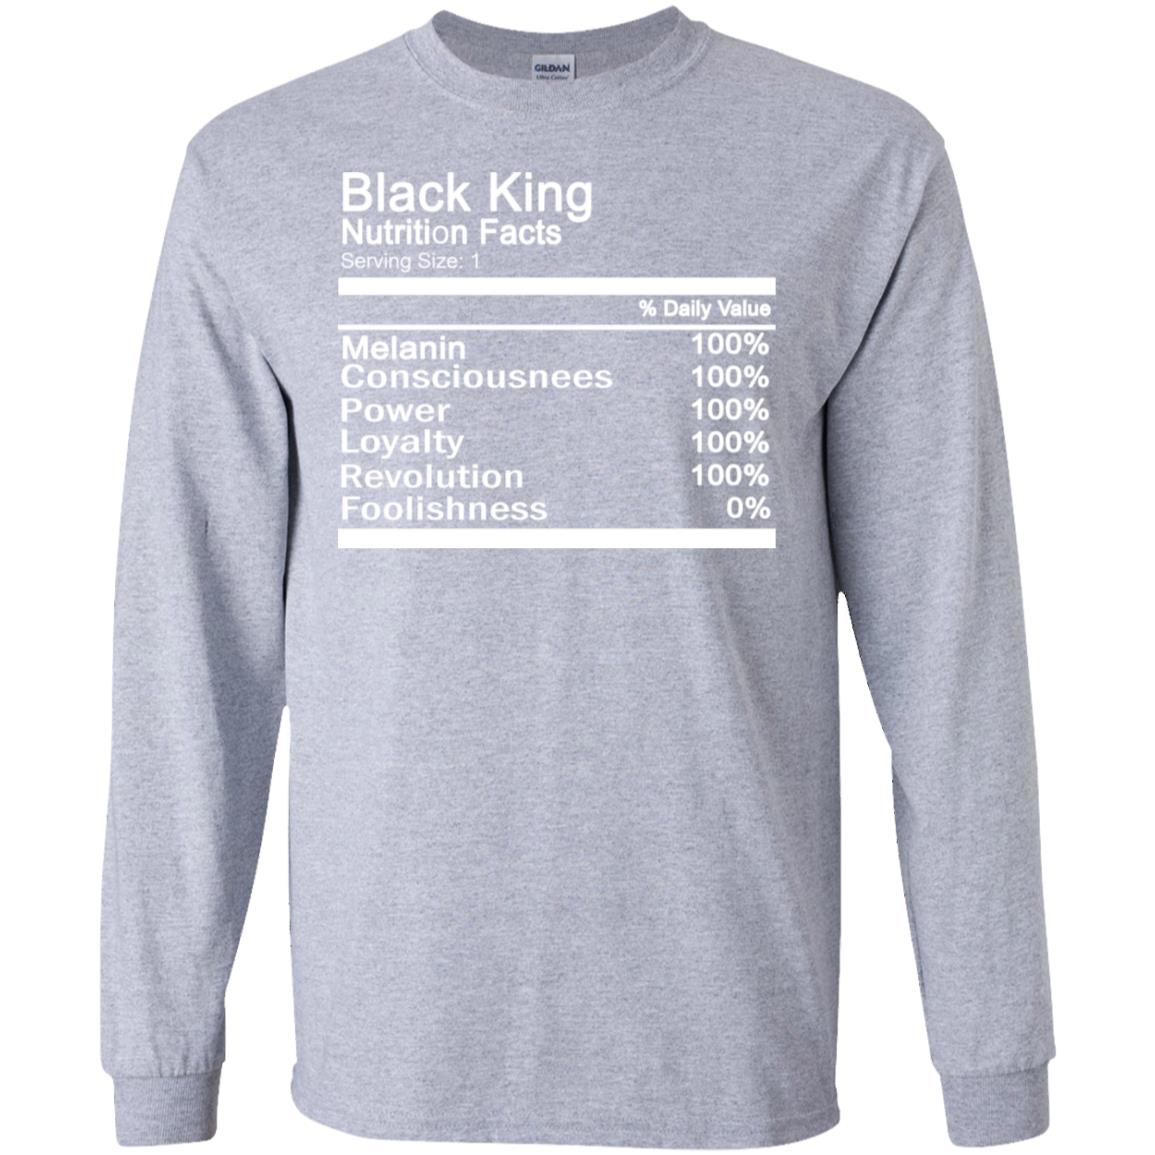 Black King Nutrition Facts T-shirts ~ African-American T-shirts ~ Shirts For Black Men ~ Black History Month